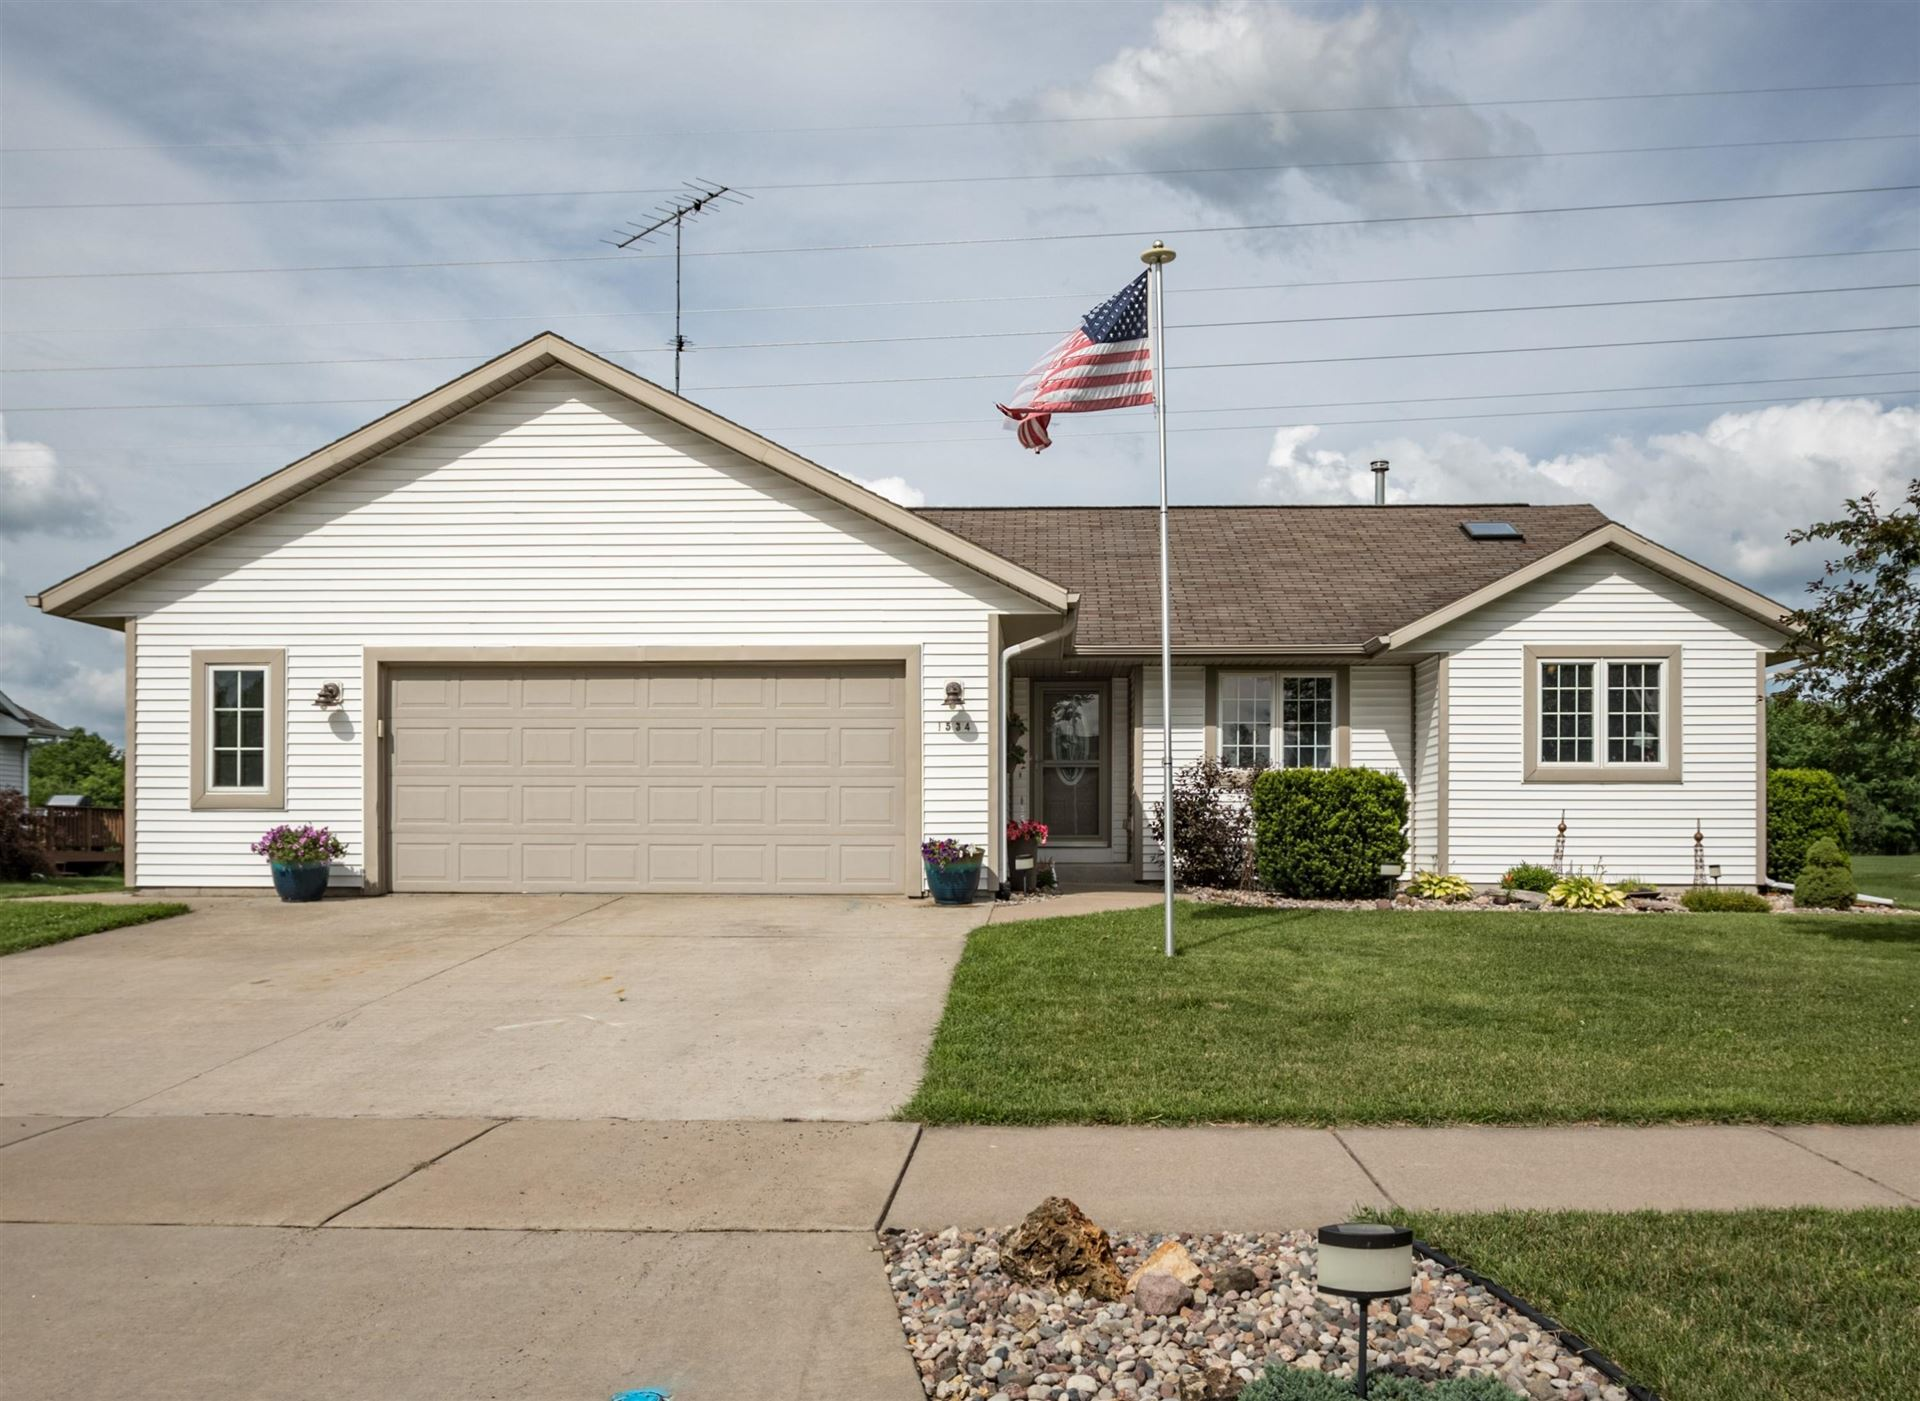 1534 Cliffview Ave, Onalaska, WI 54650 - #: 1697023